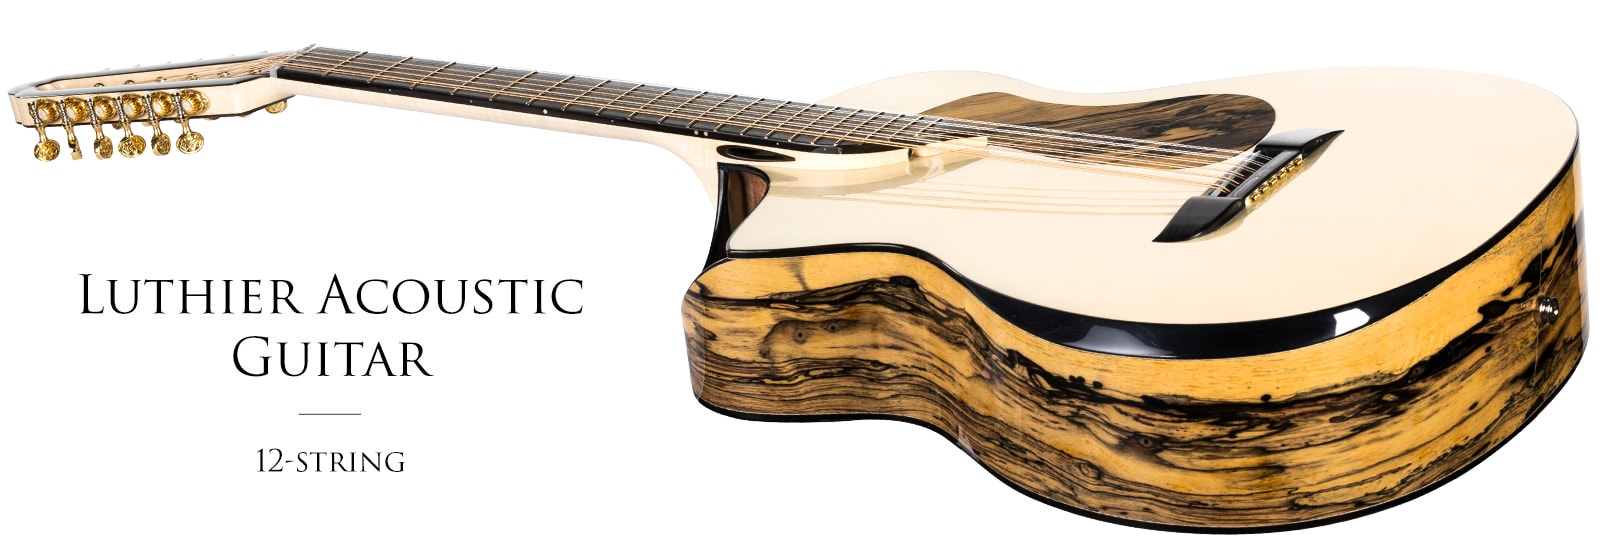 Luthier Acoustic Guitar 12-string Grand Auditorium with upper-bout left soundhole